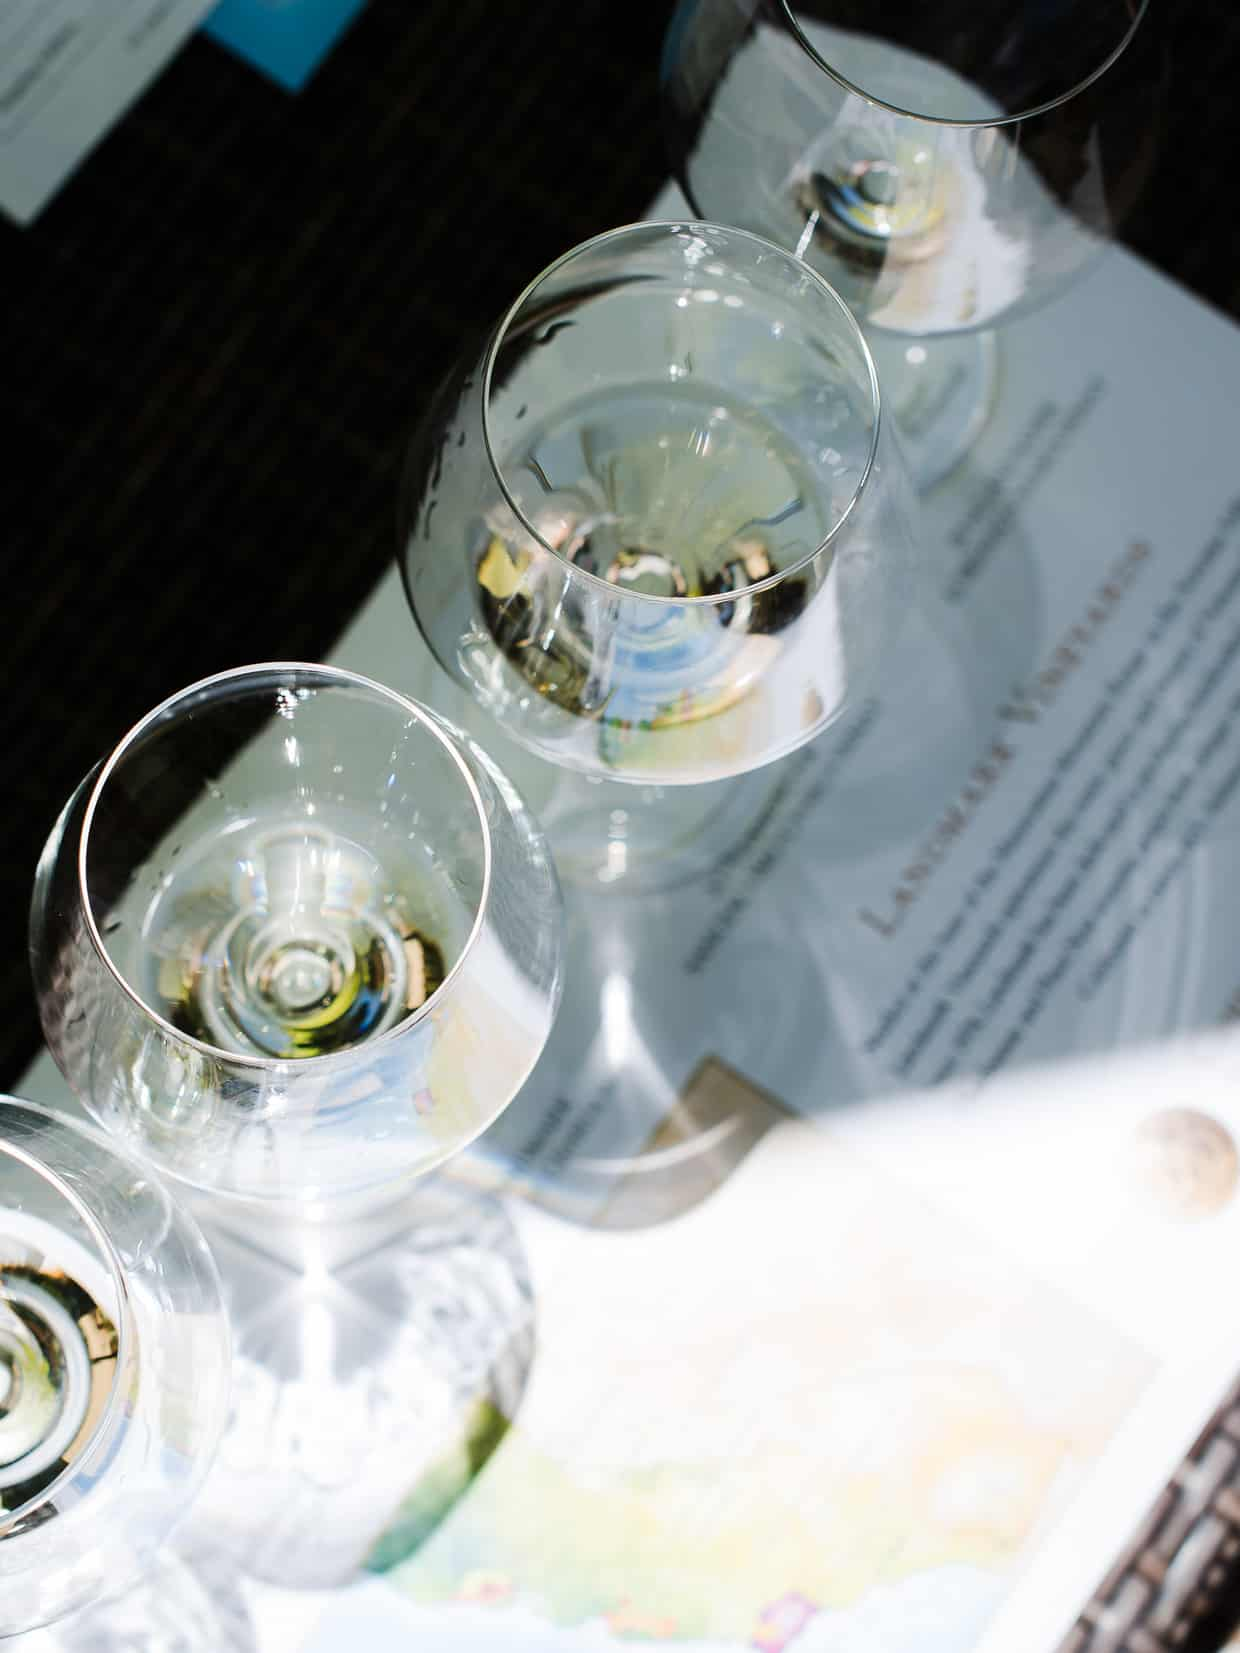 Top down view of 4 wine glasses with white wine at a wine tasting.